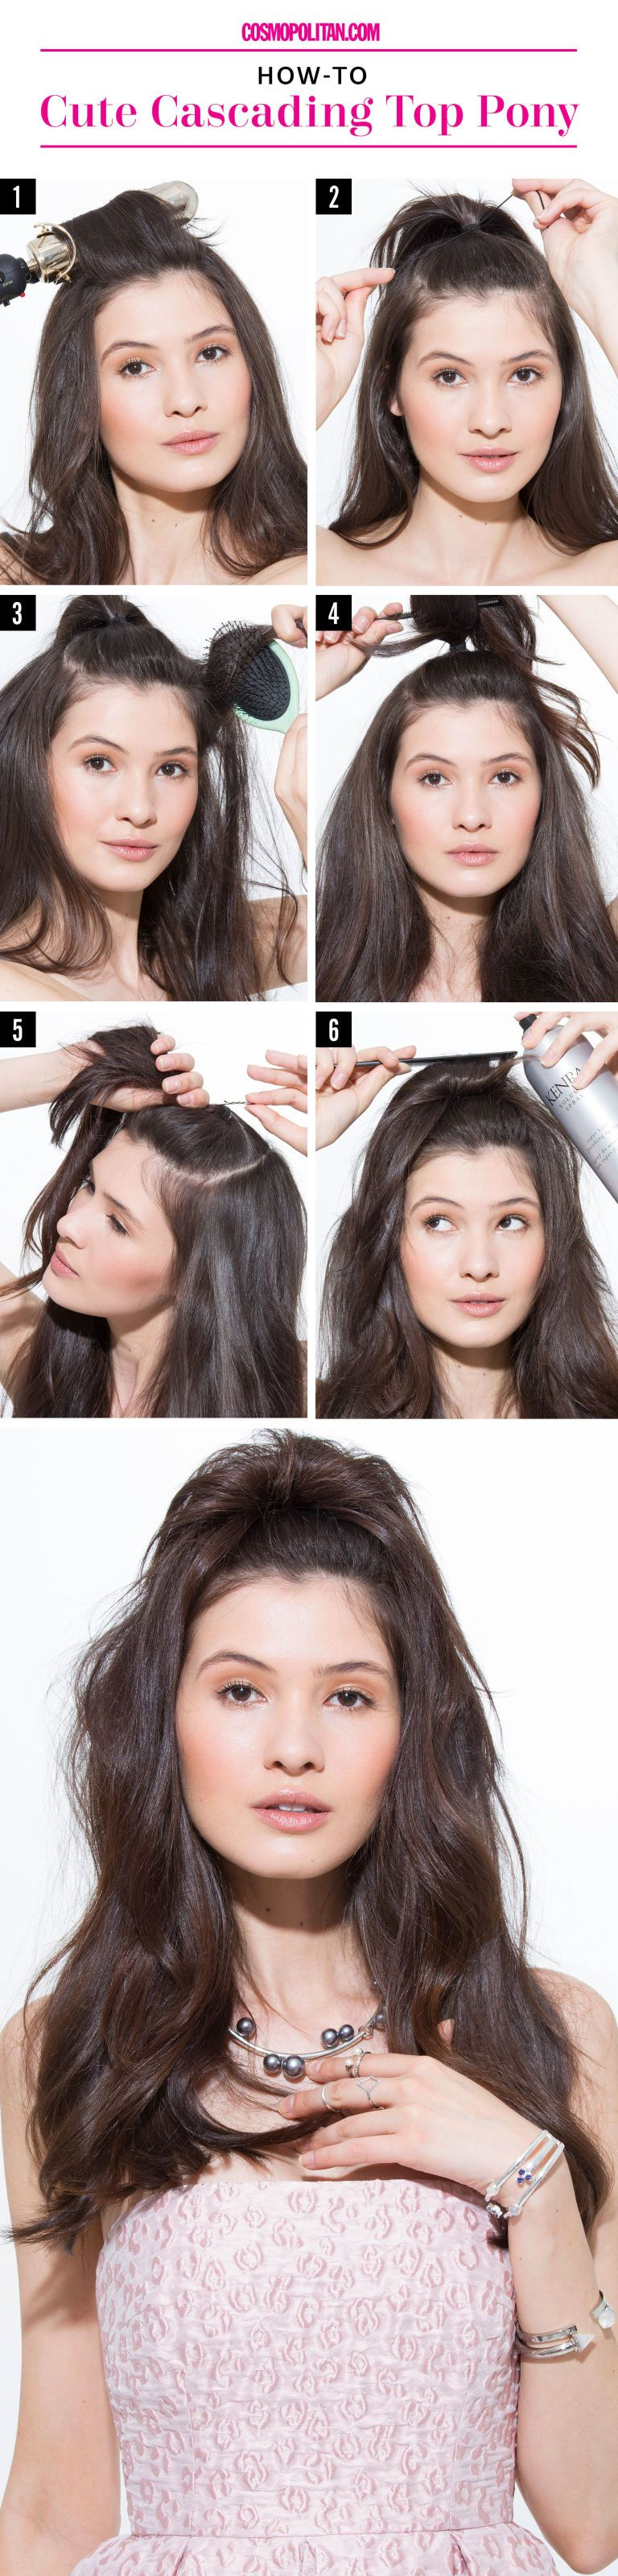 4 last-minute diy evening hairstyles that will leave you